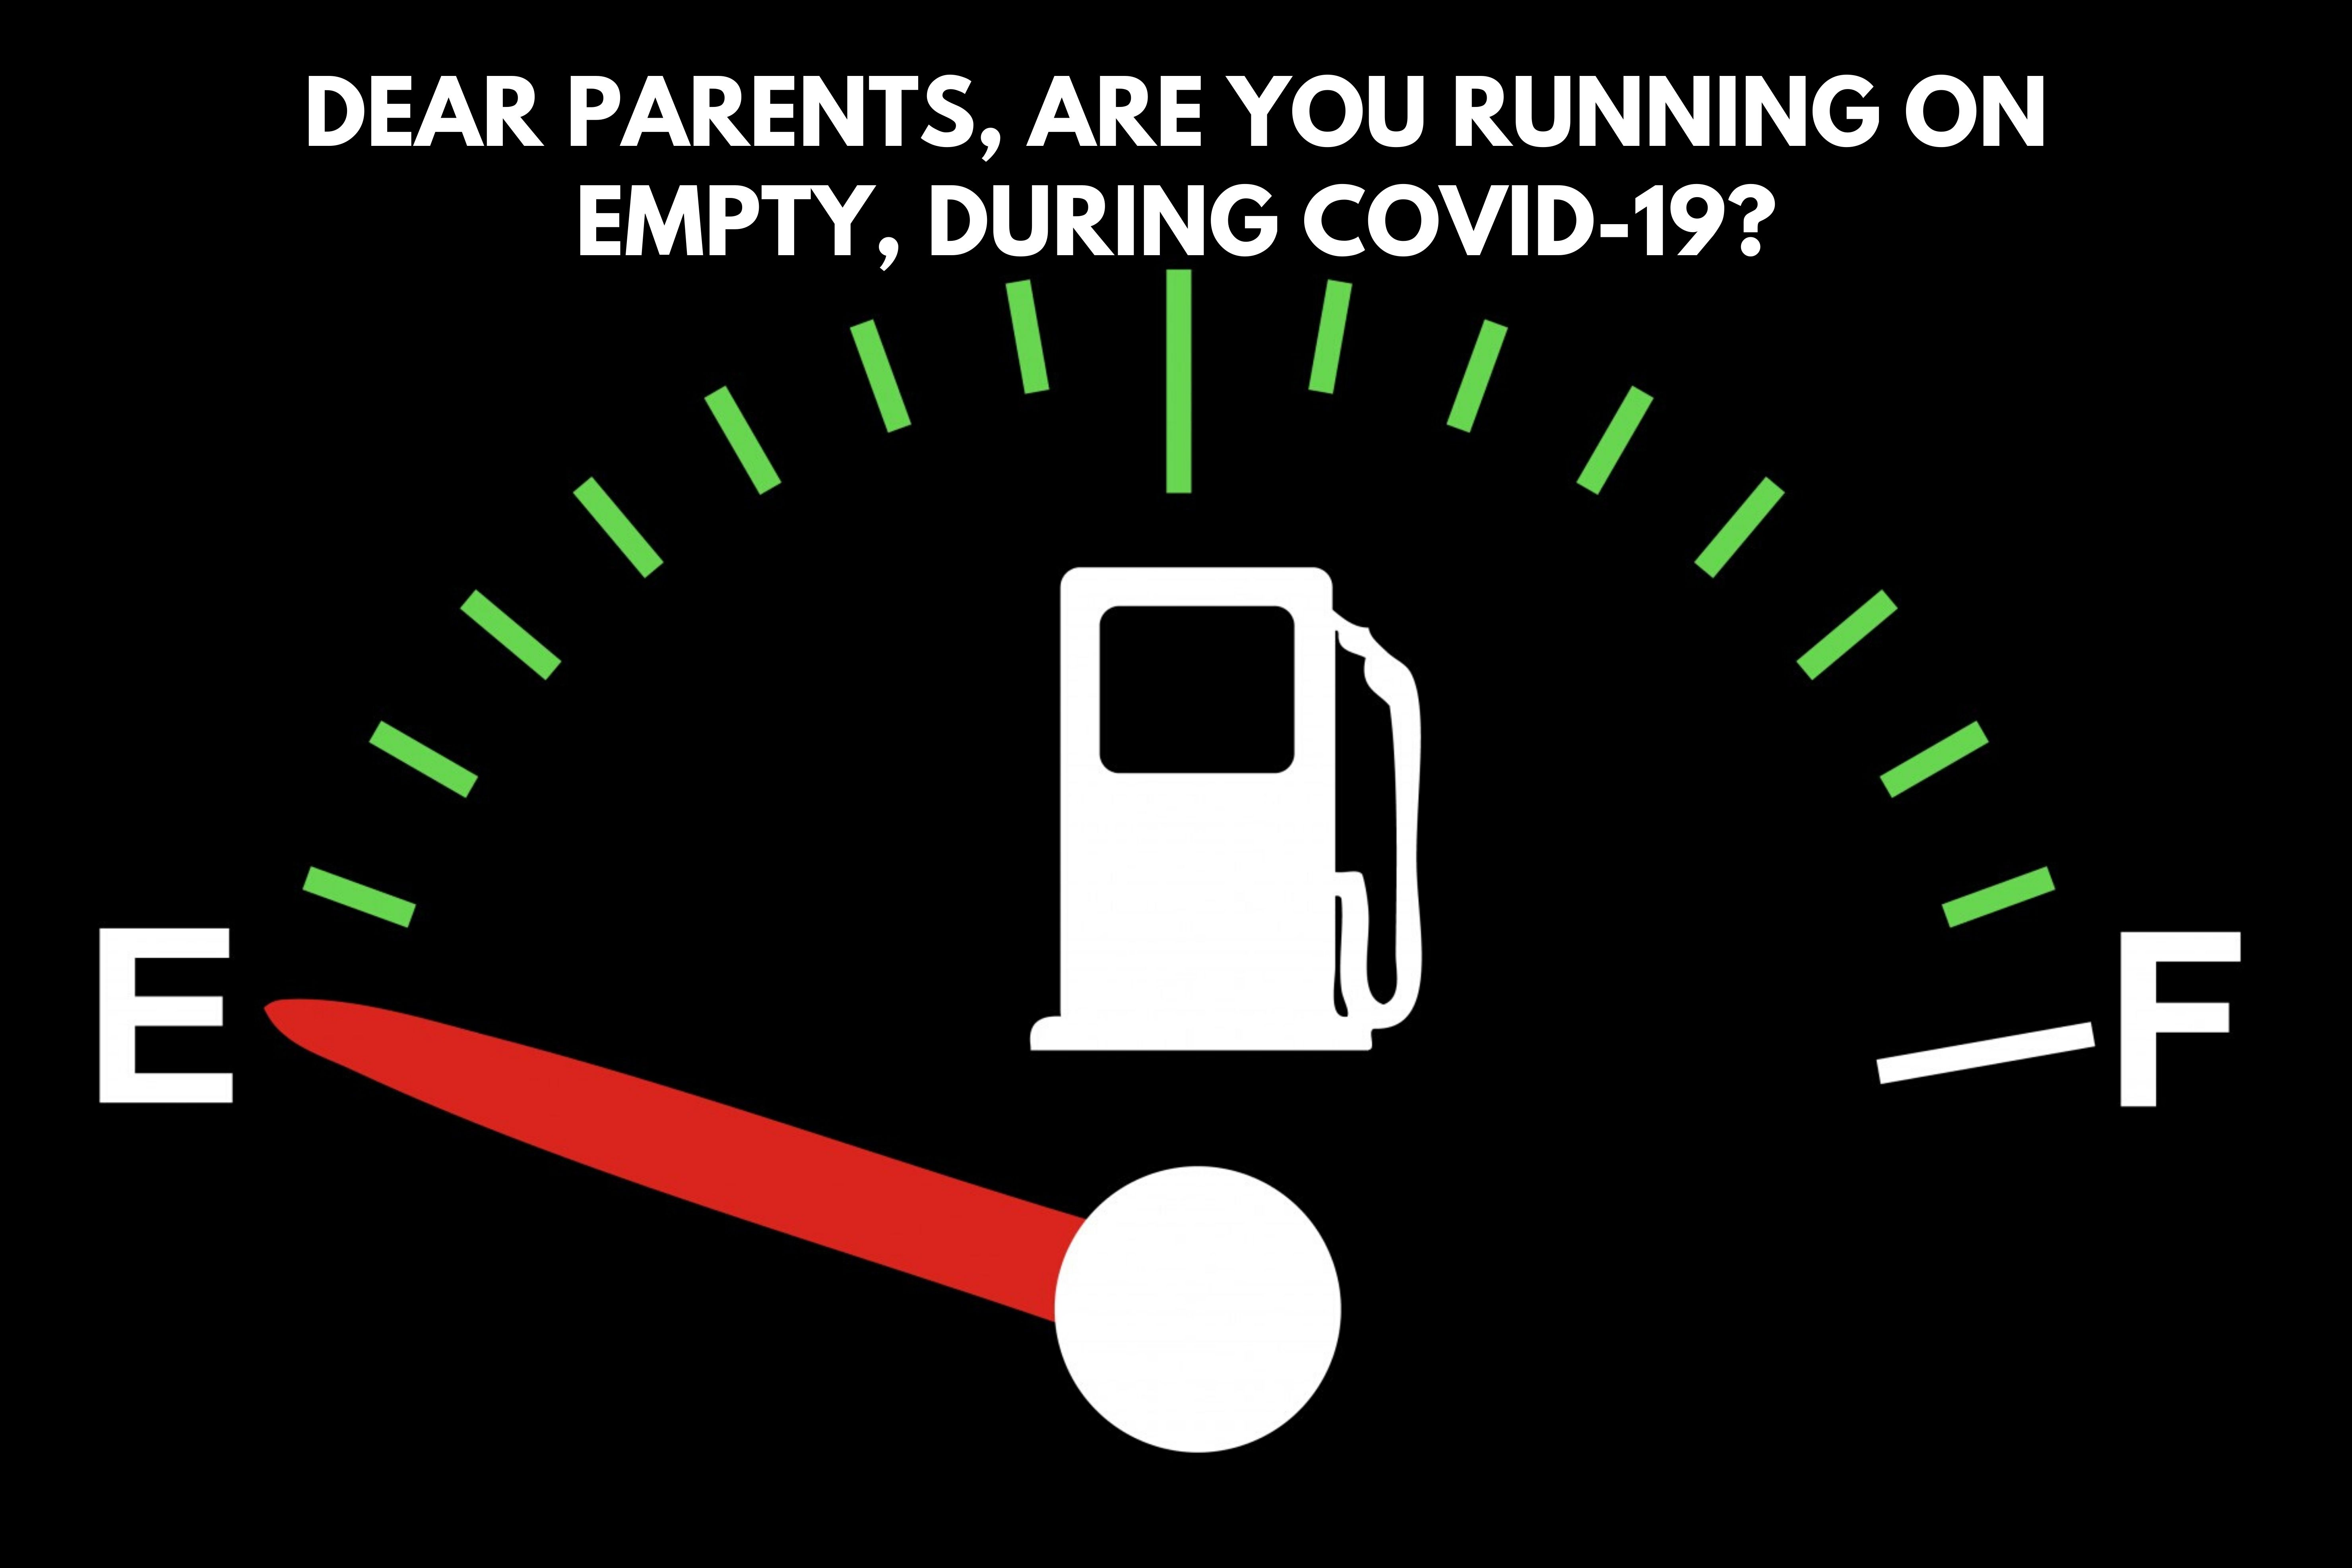 Dear parents, are you running on empty during COVID-19?